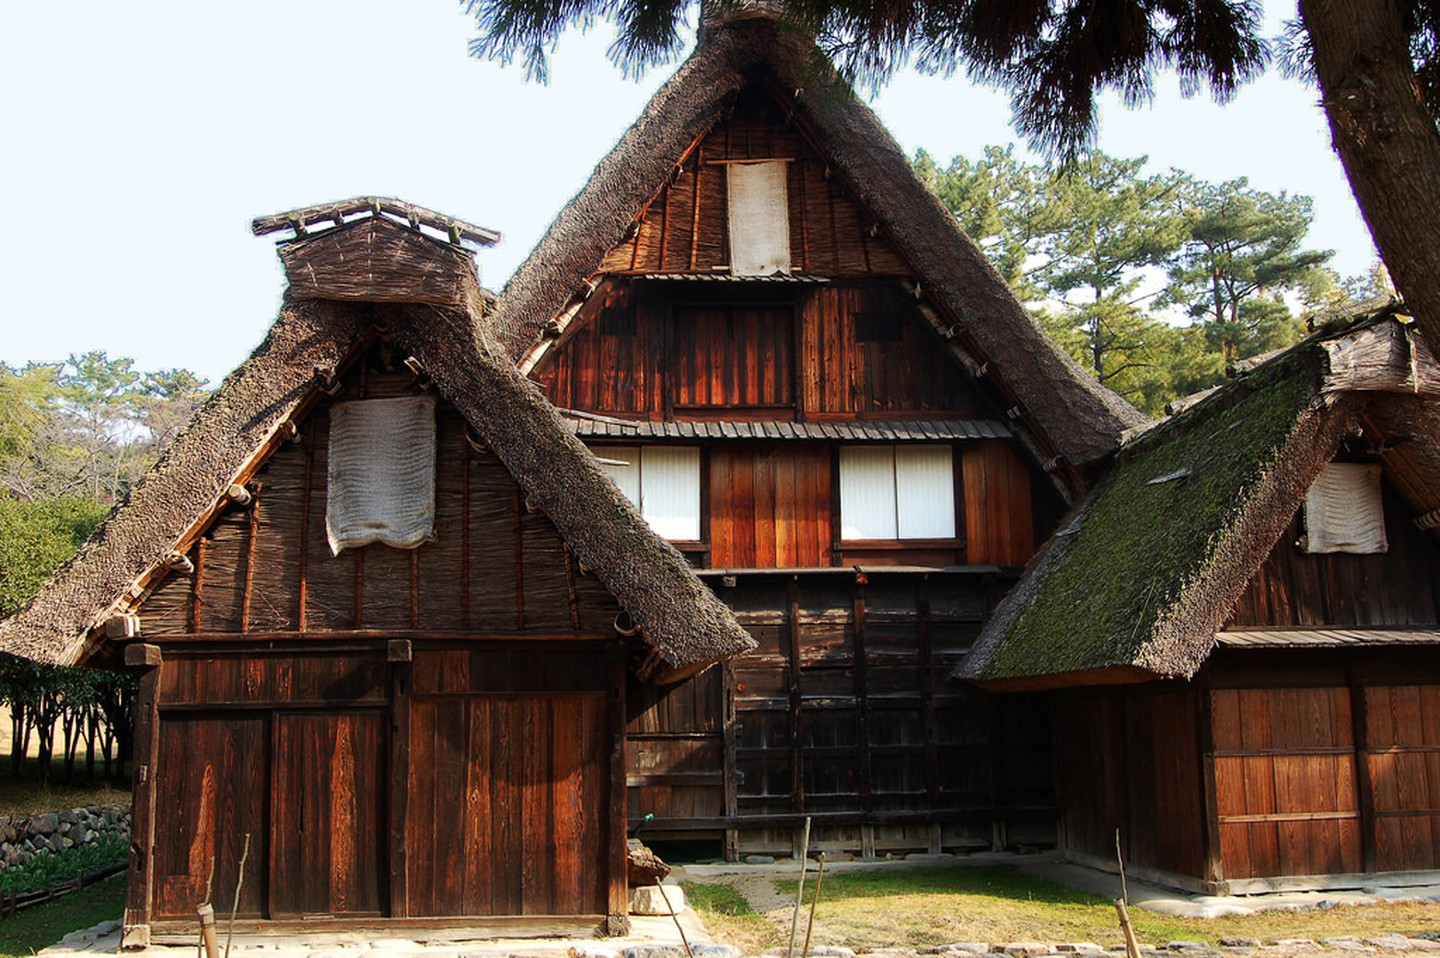 Shirakawa-go farmhouse